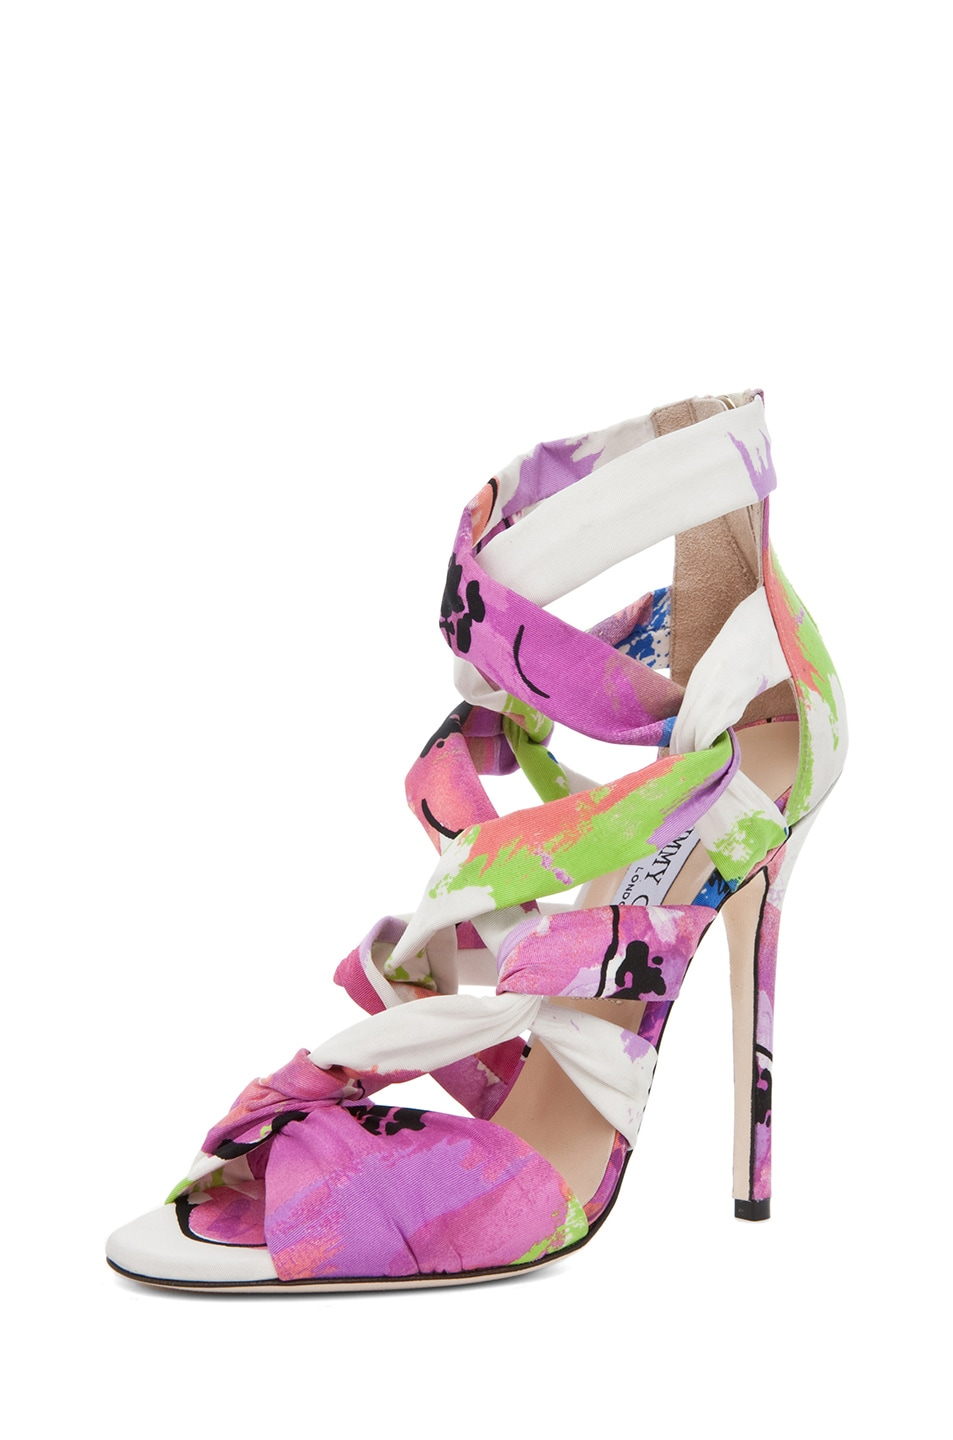 Image 2 of Jimmy Choo Kemble Floral Heel in Pink Mix